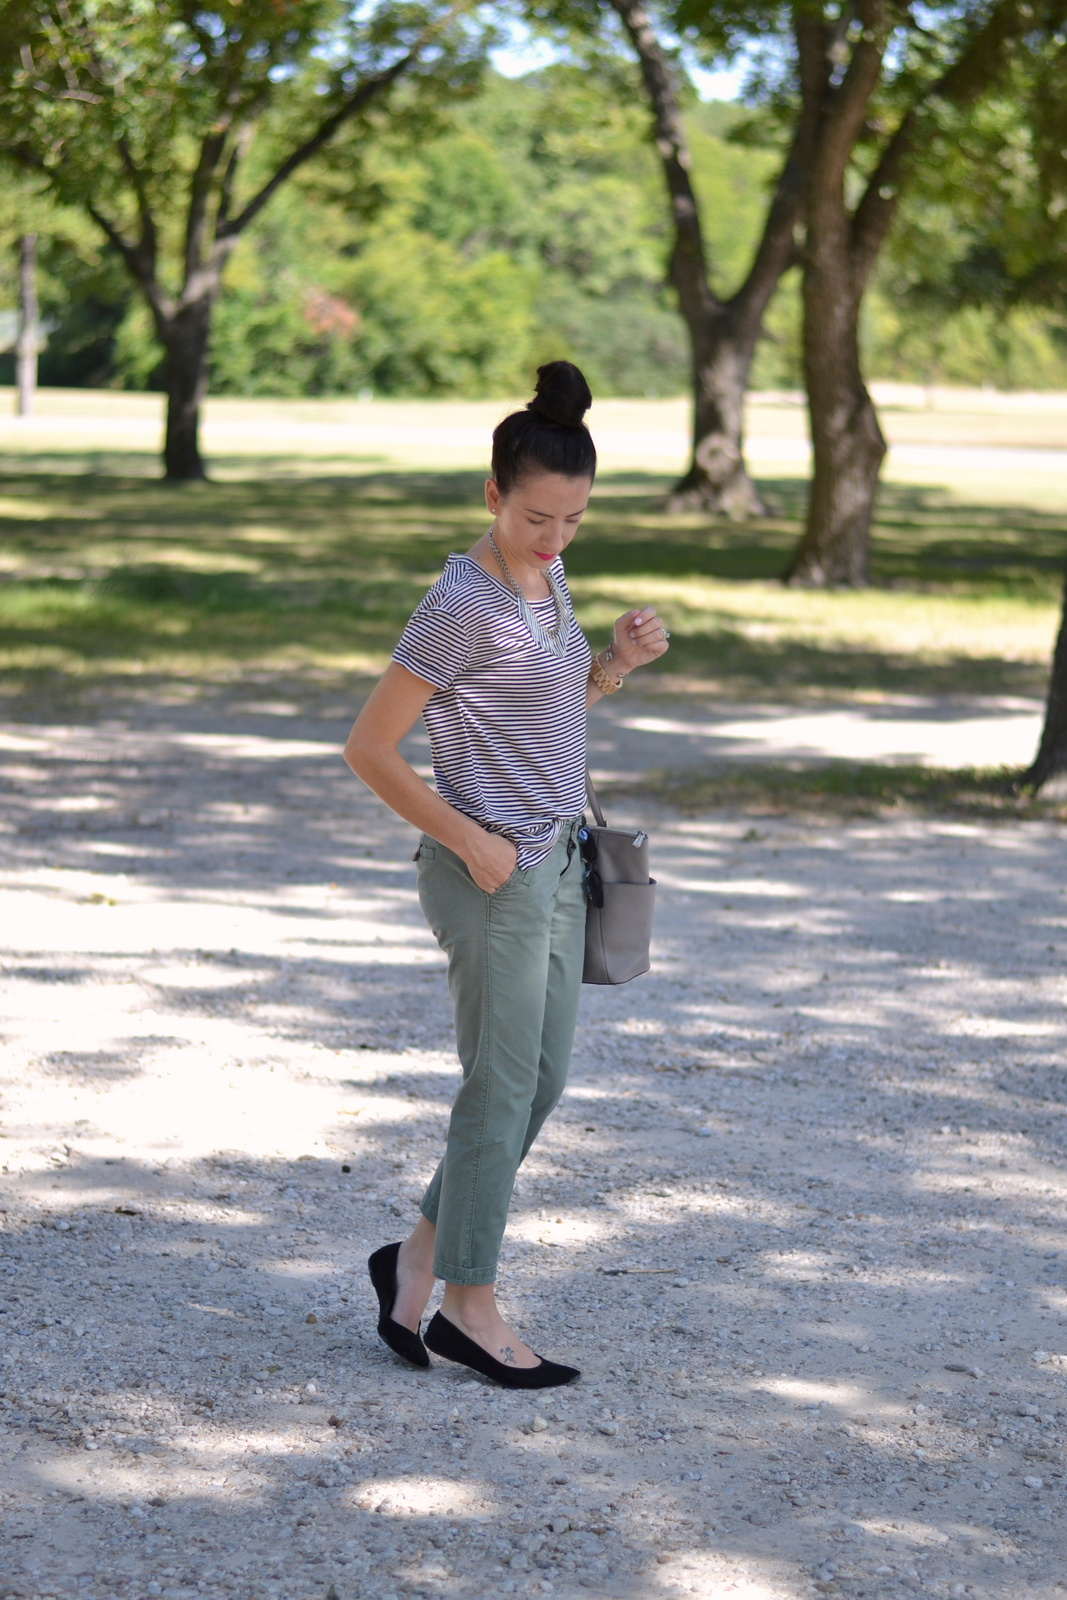 Basic summer look with striped tee and flats